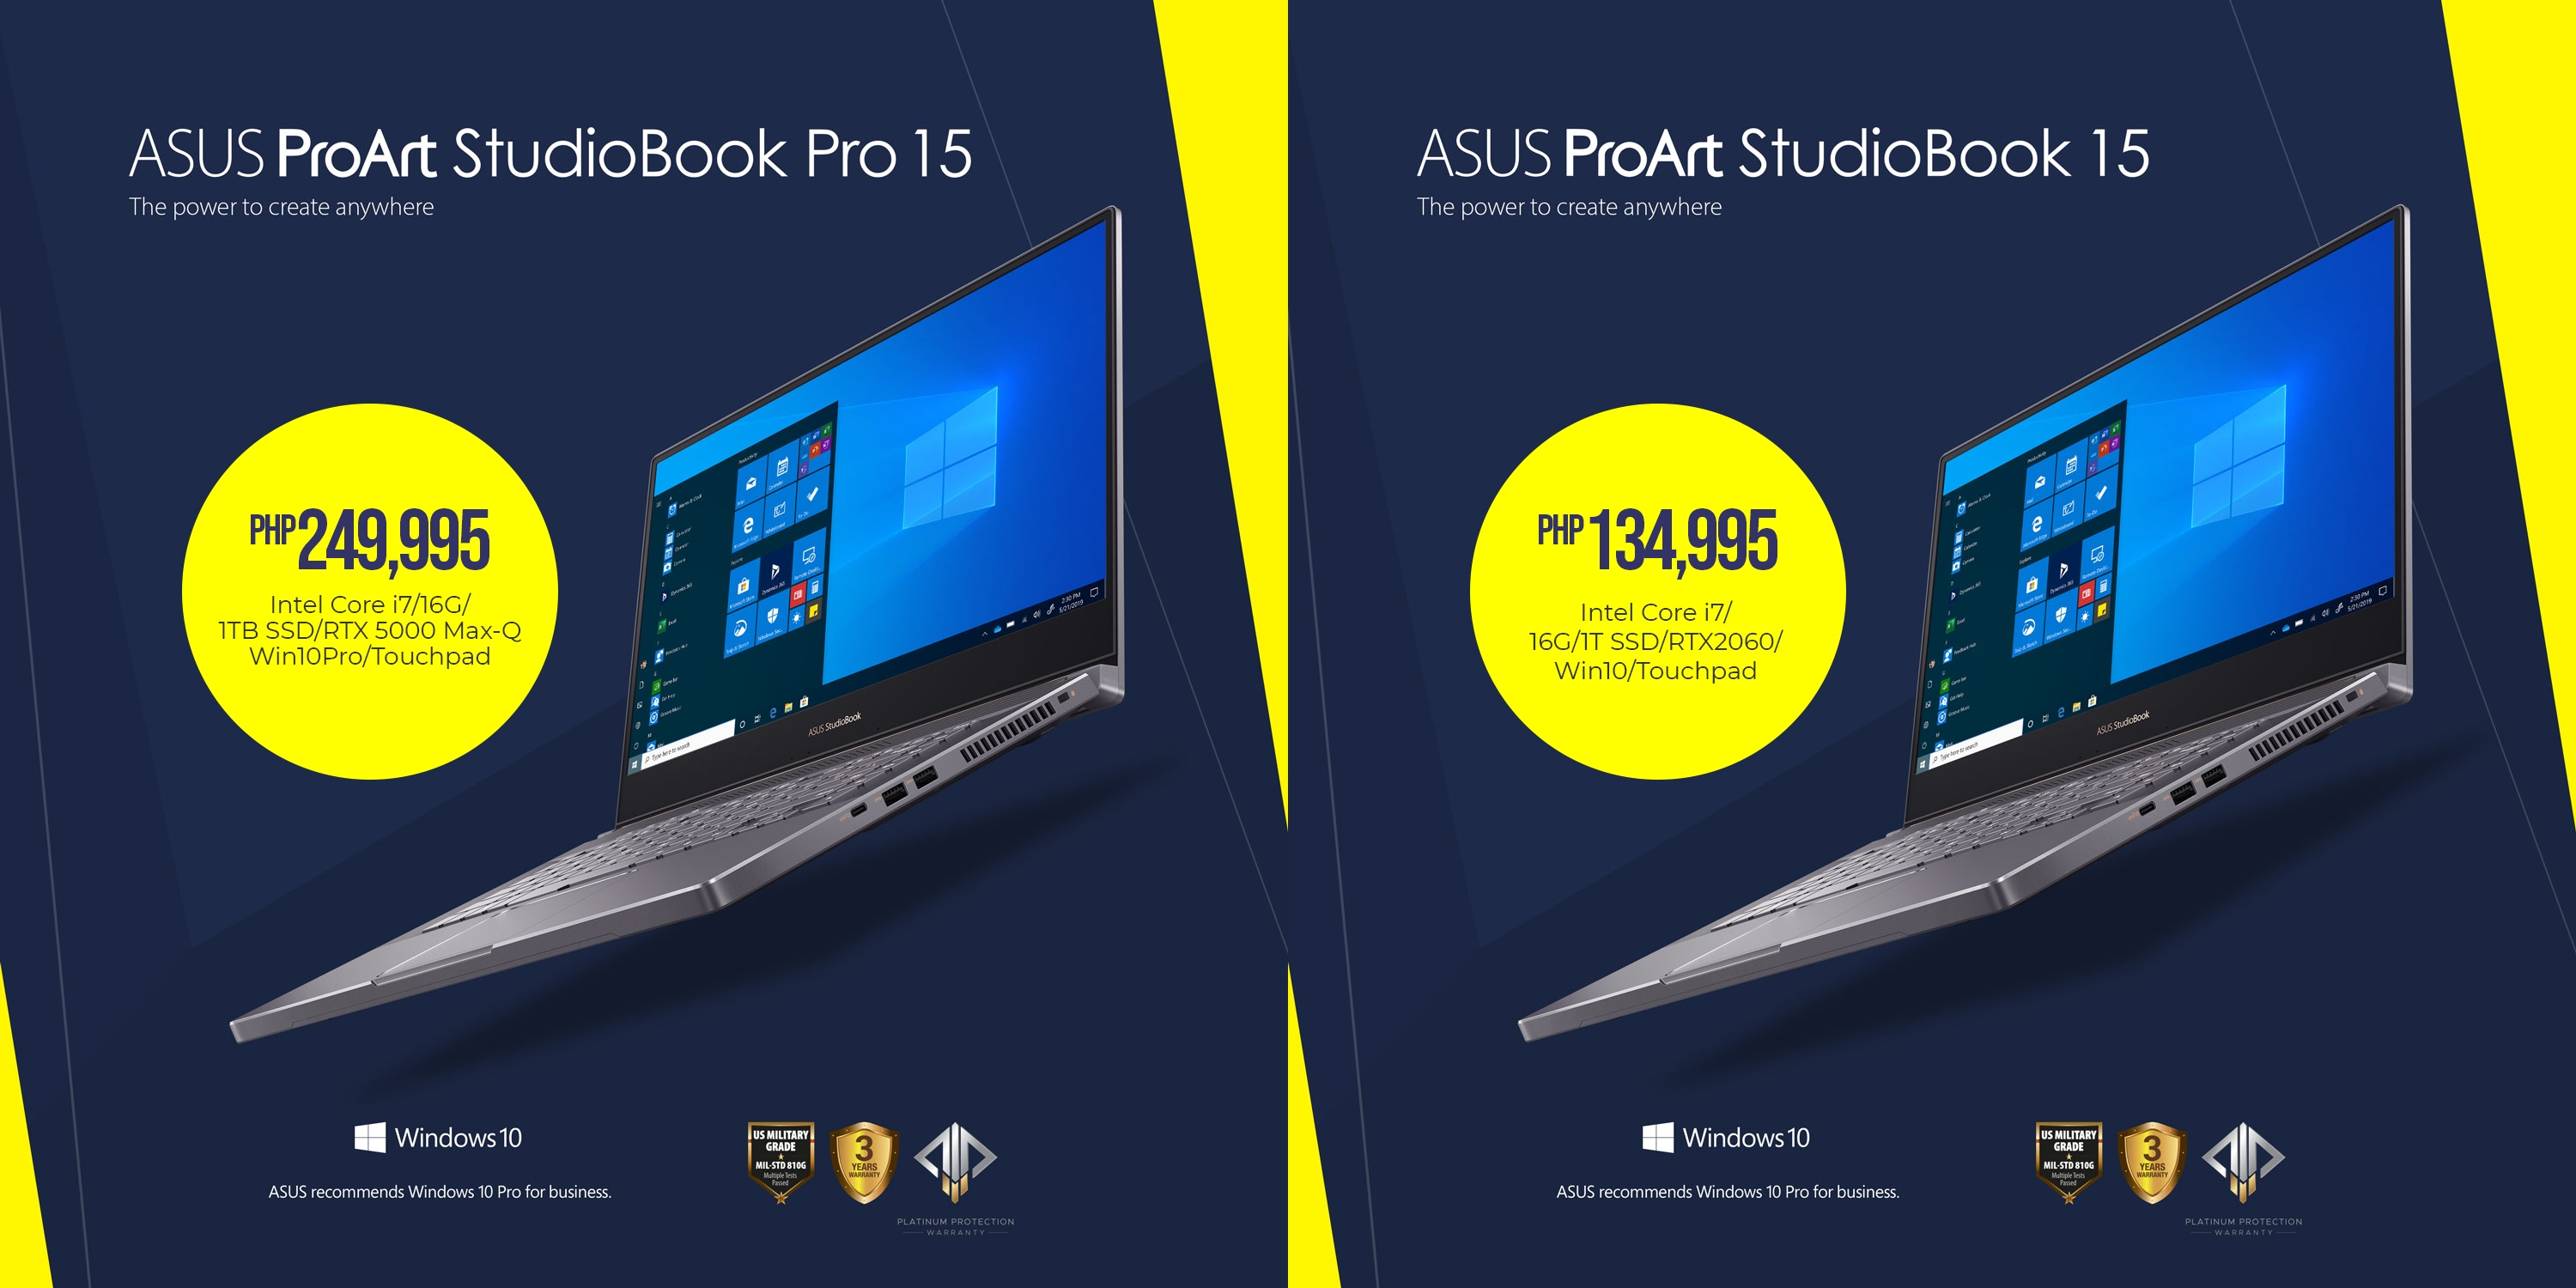 ASUS ProArt StudioBook Pro 15 (W500) - Php 249,995 and StudioBook 15 (H500) - Php 134,995